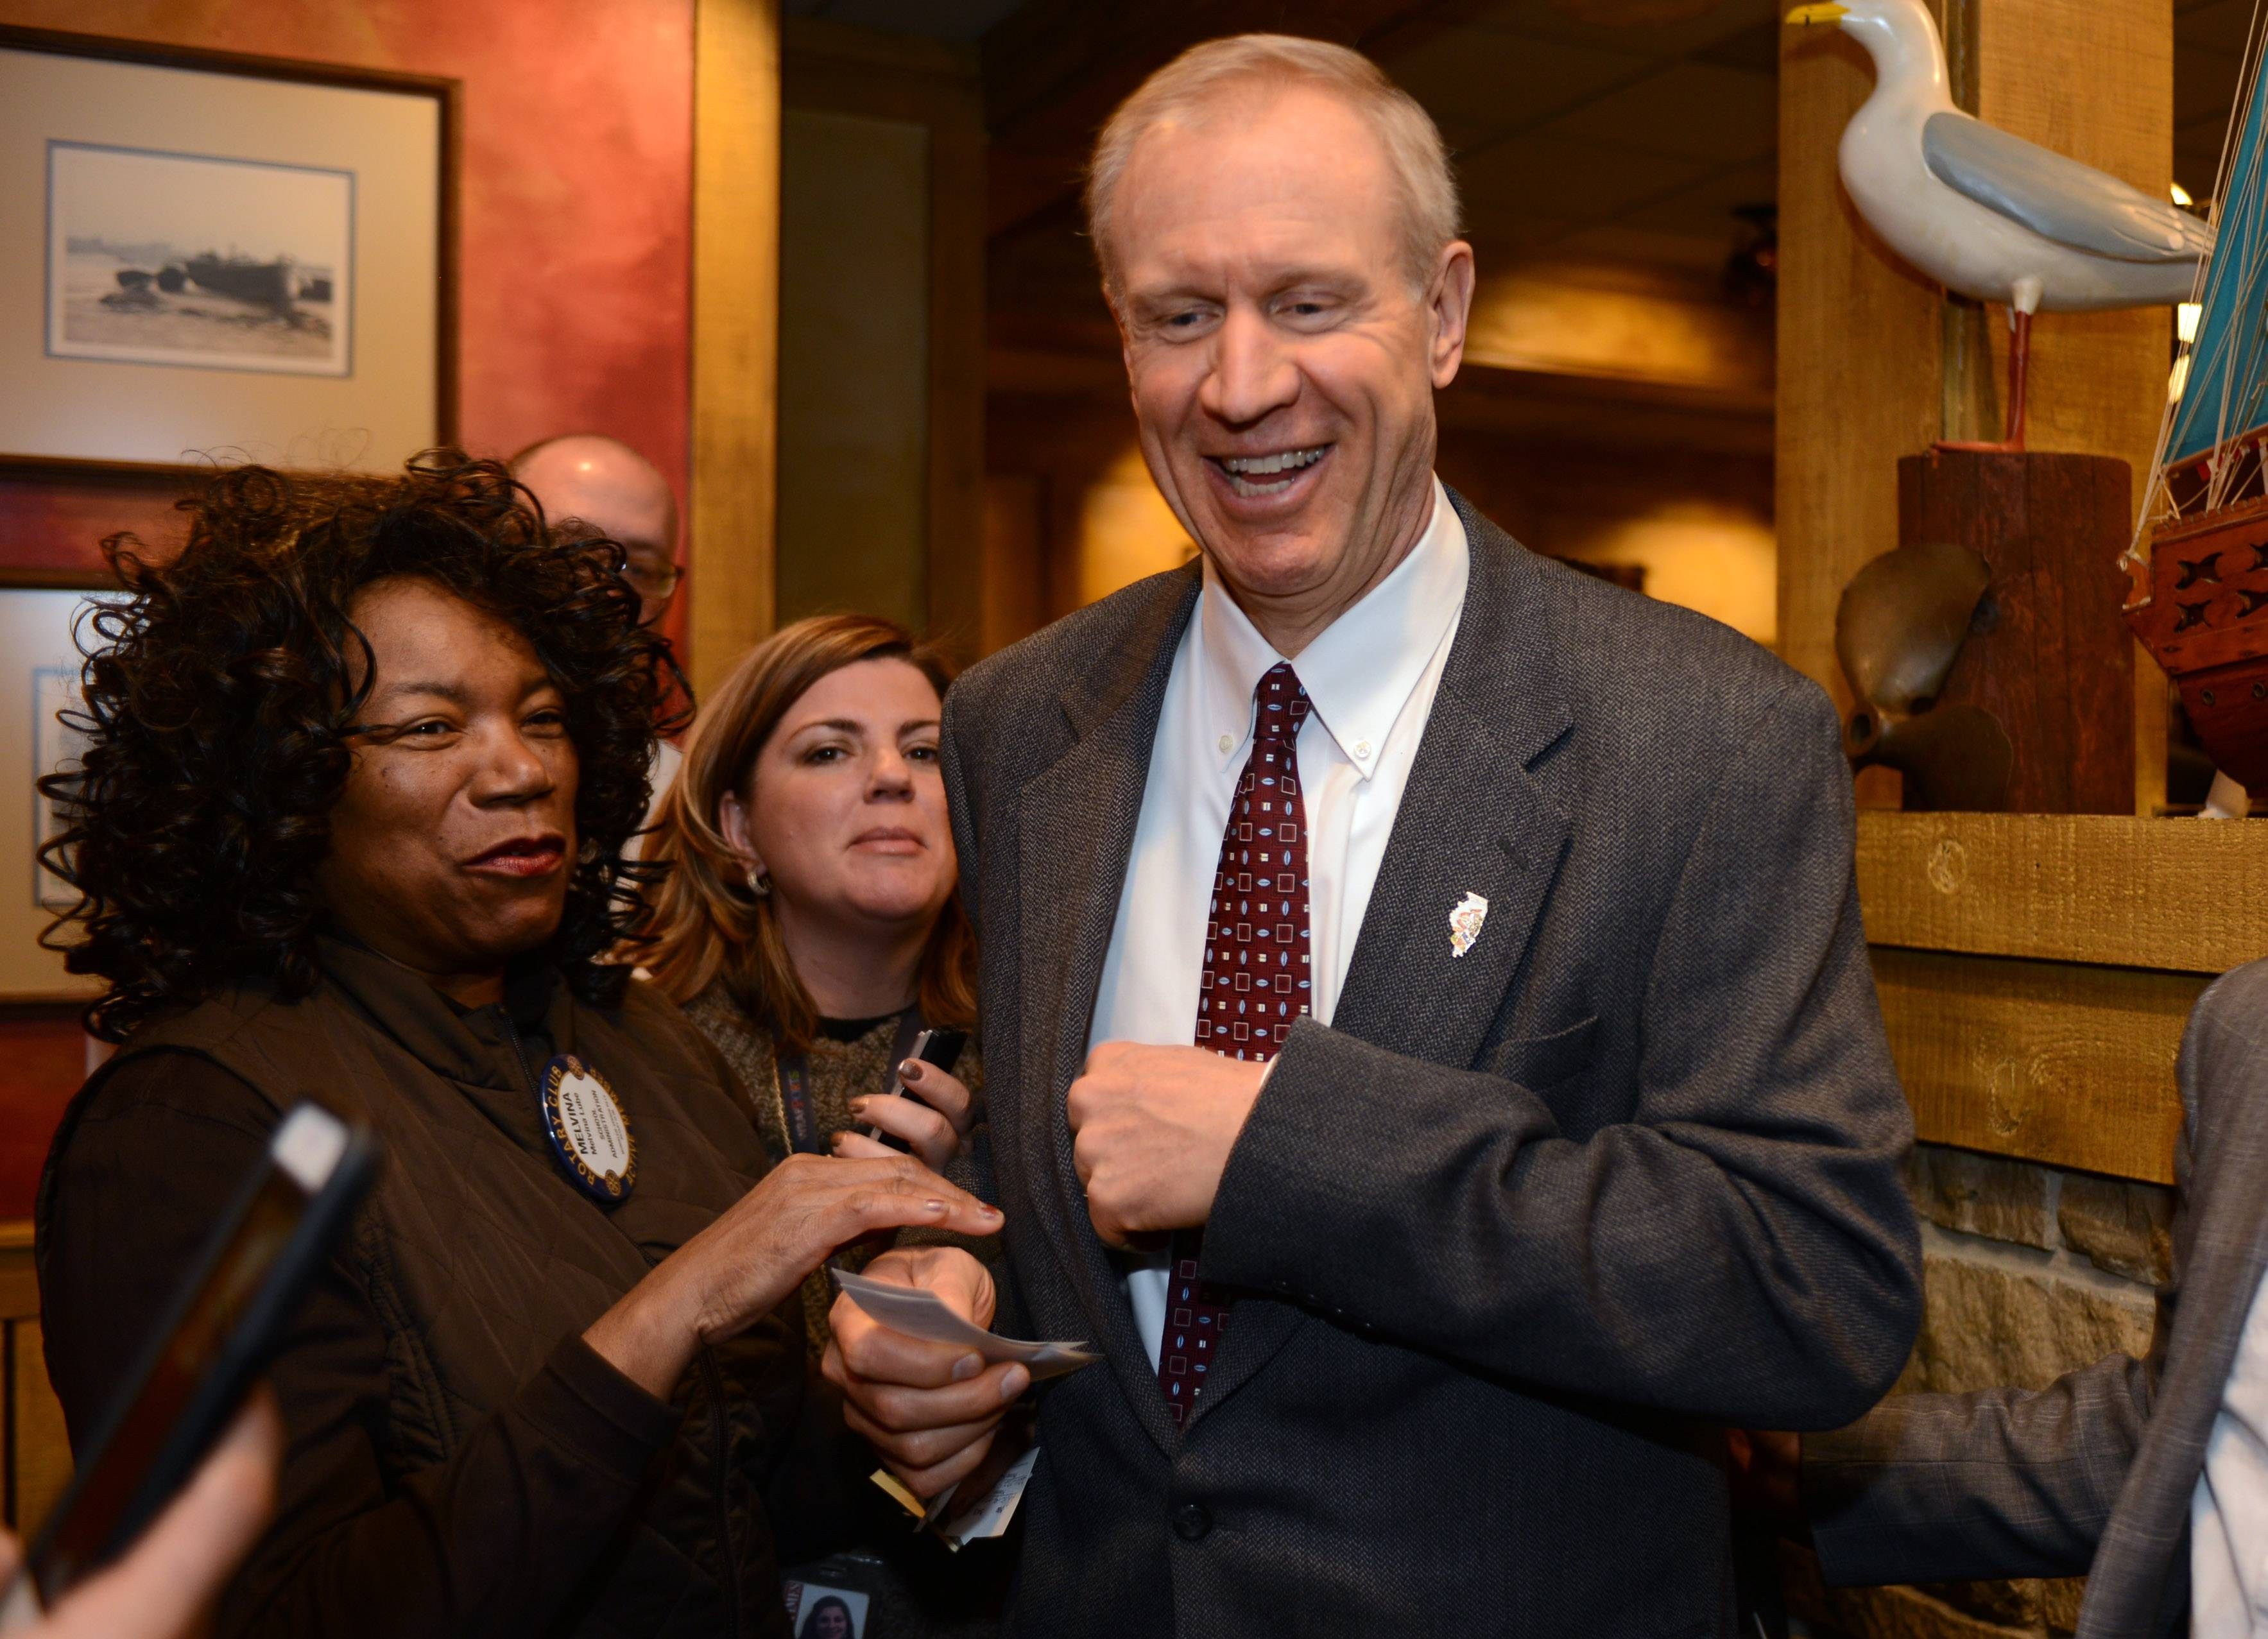 Rauner targets unions in Lake County speech in Mundelein